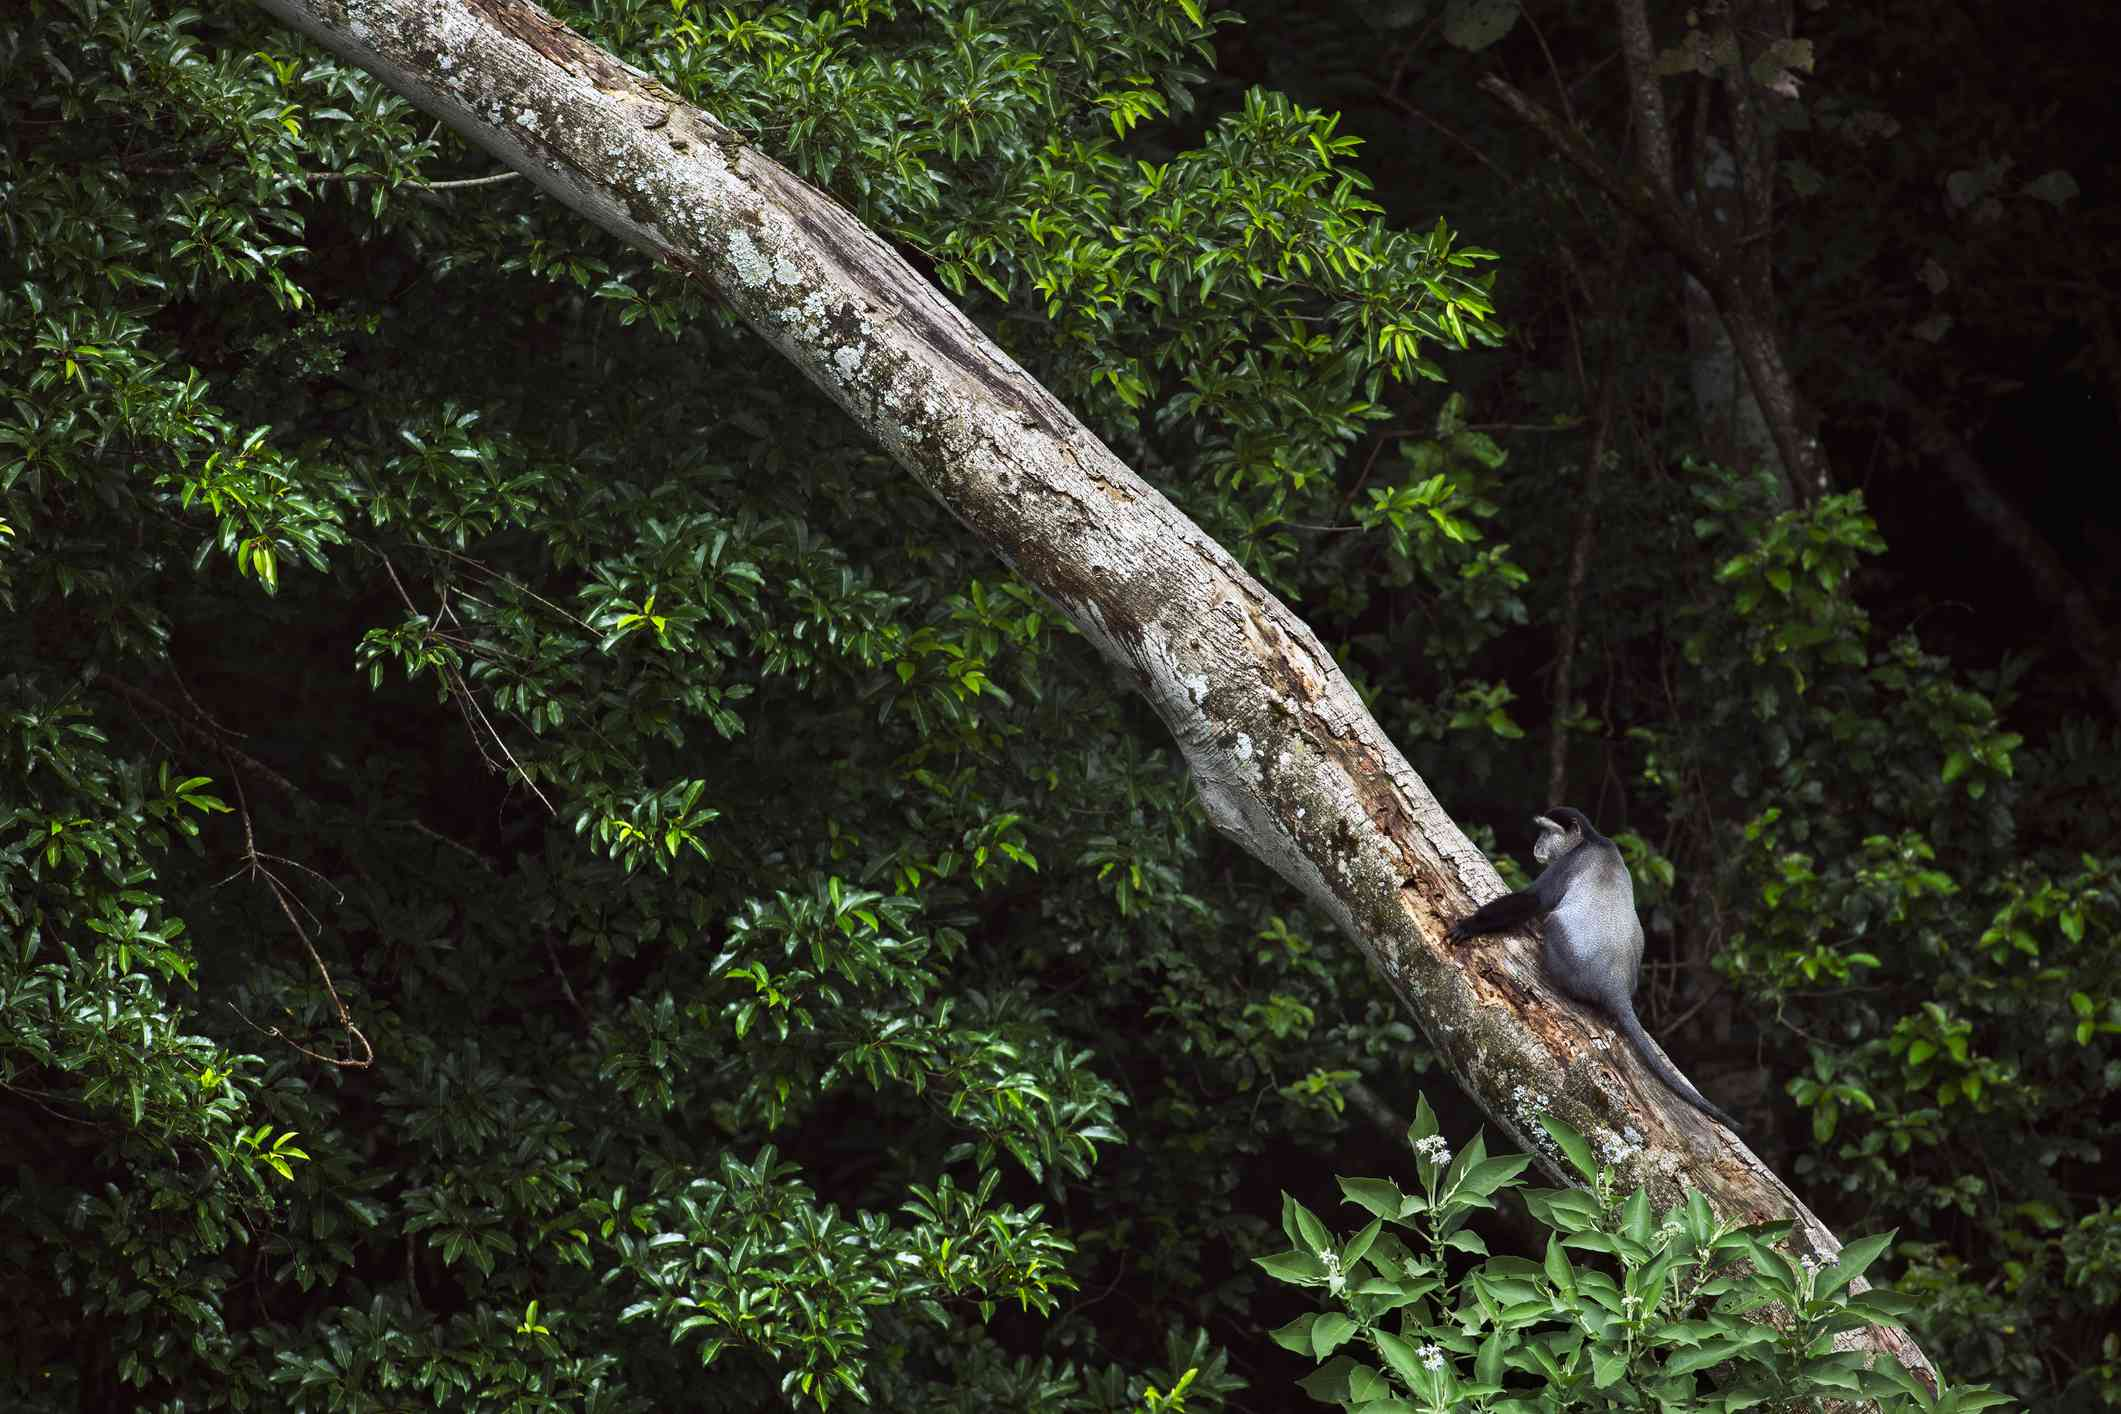 black and white monkey sitting on the trunk of a fallen tree among green foliage